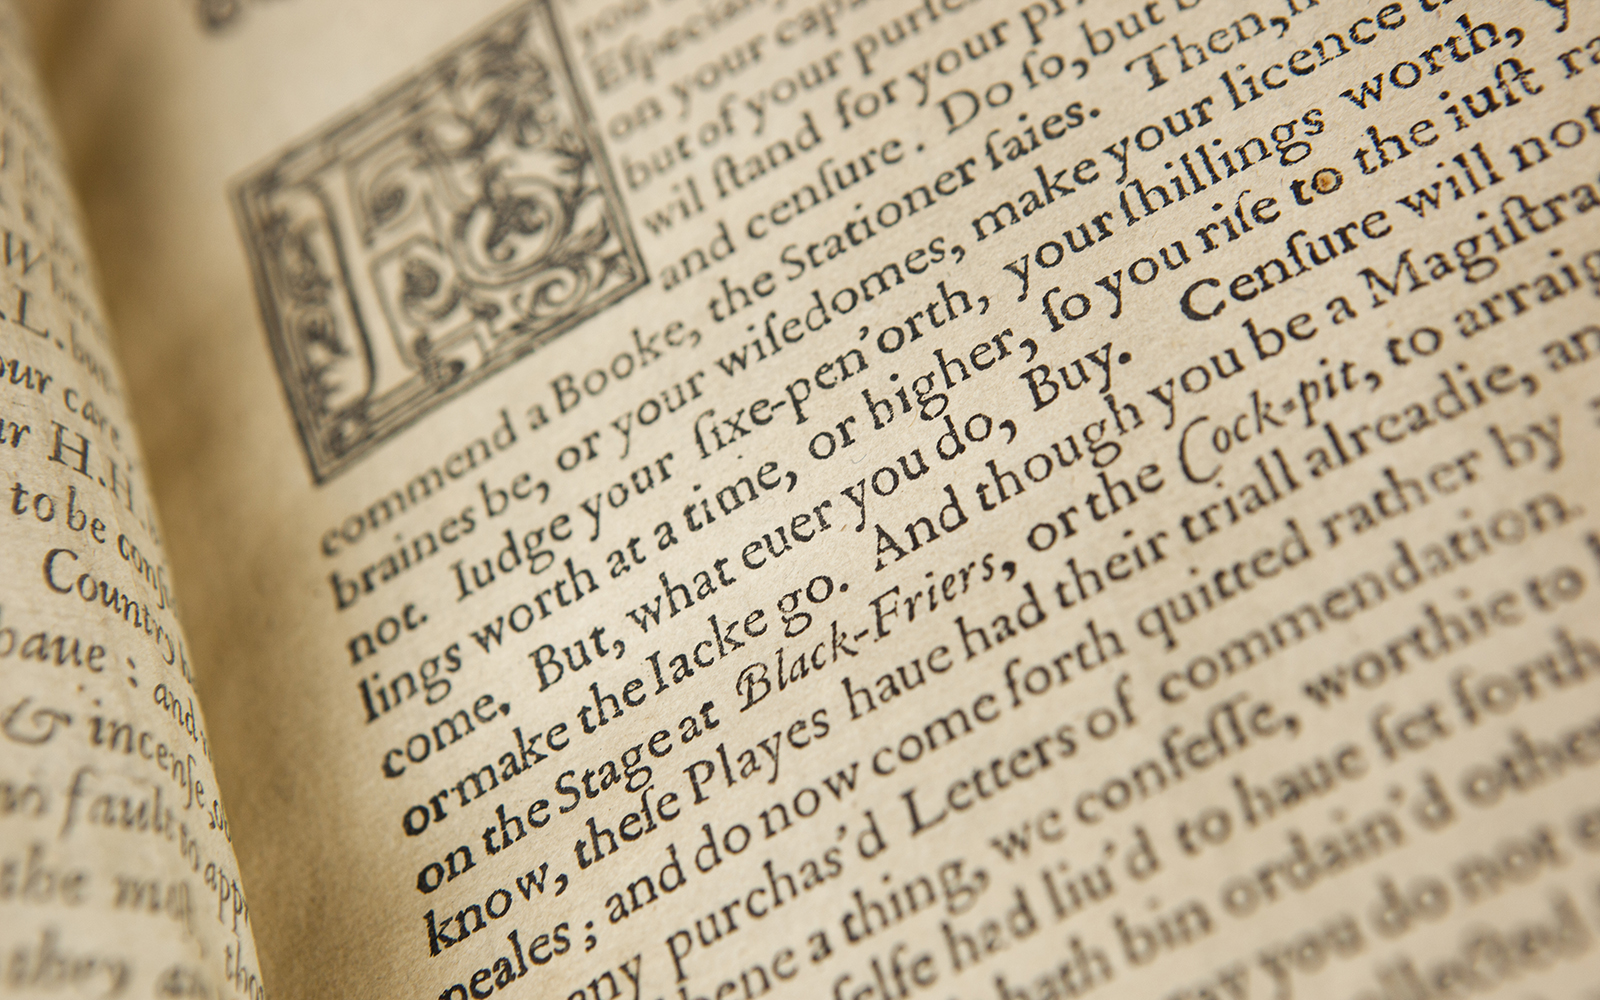 An old book lies open, with a floridly illustrated first letter